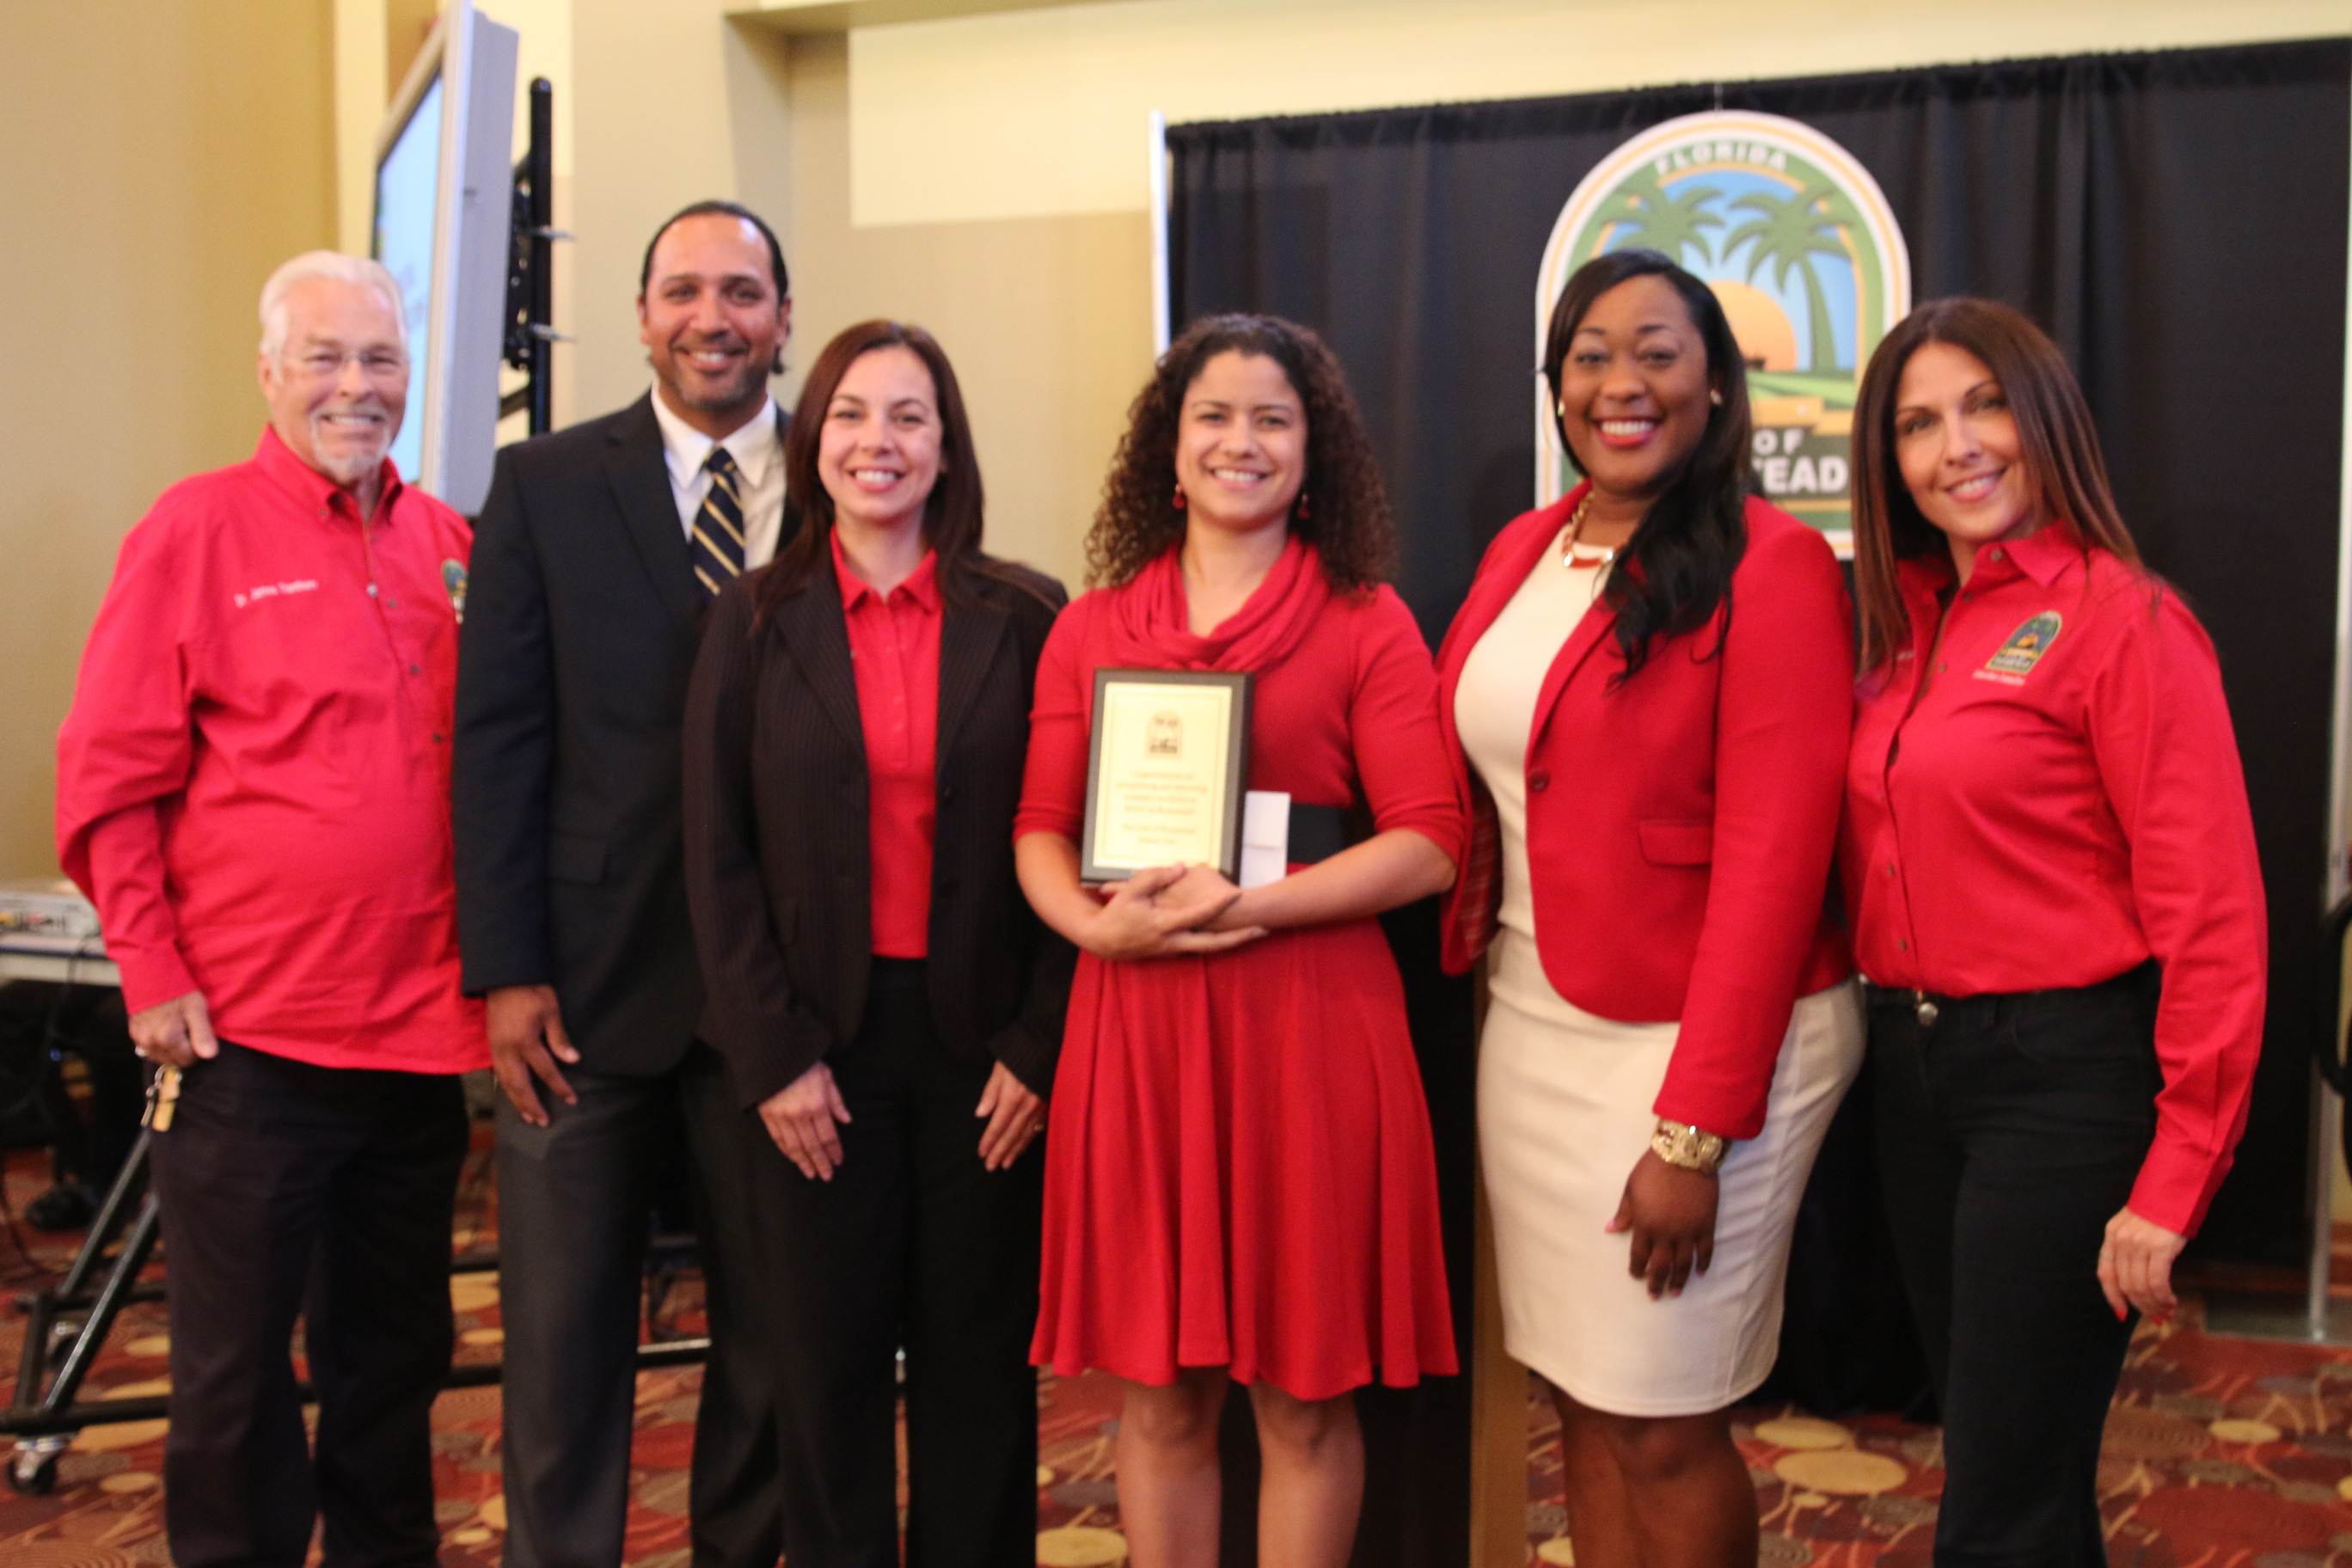 Councilwoman Fairclough Honors Local Rookie Teacher of the Year Winner